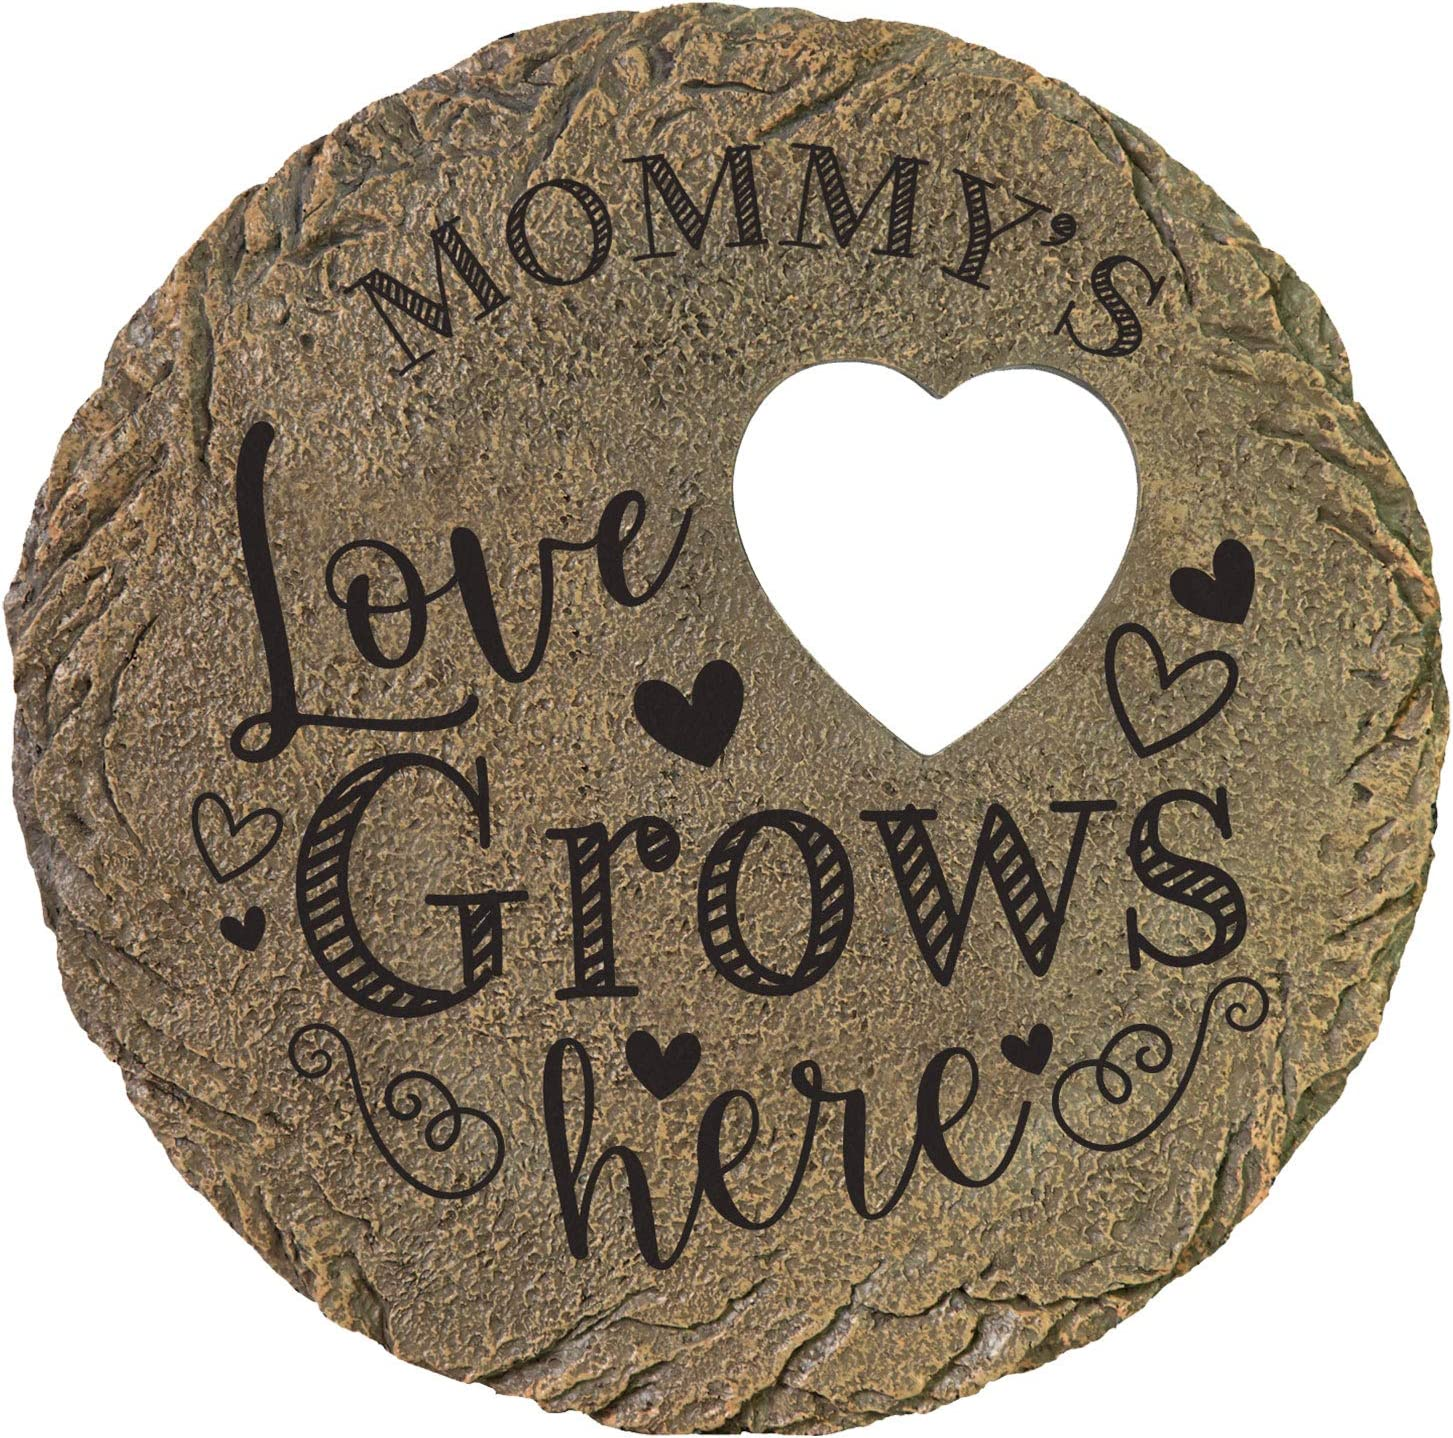 AL完売しました。 Let's Make 40%OFFの激安セール Memories - Personalized Love Grows Her Garden Stone